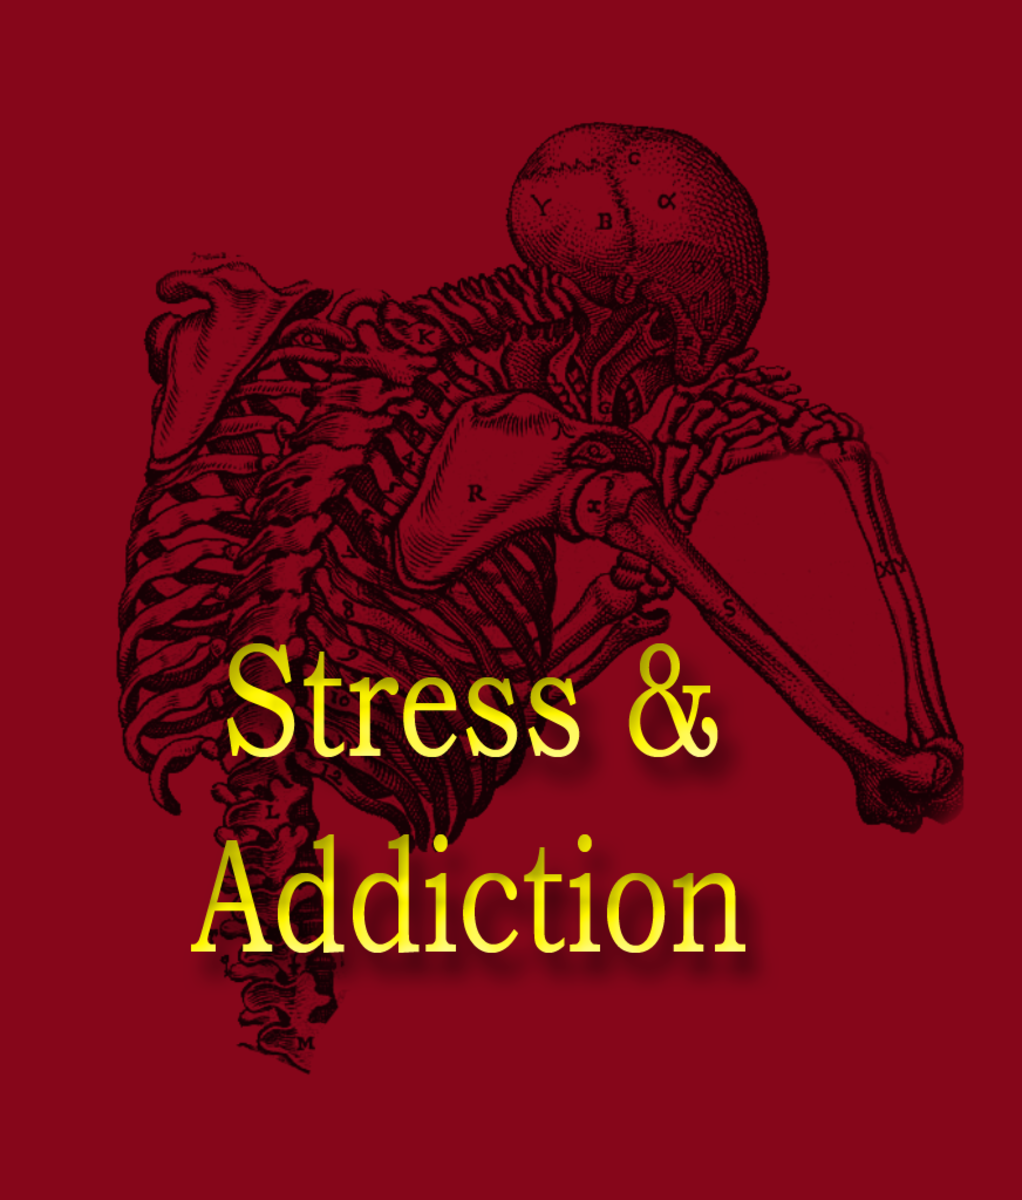 anger-and-addictions-as-a-result-of-stress